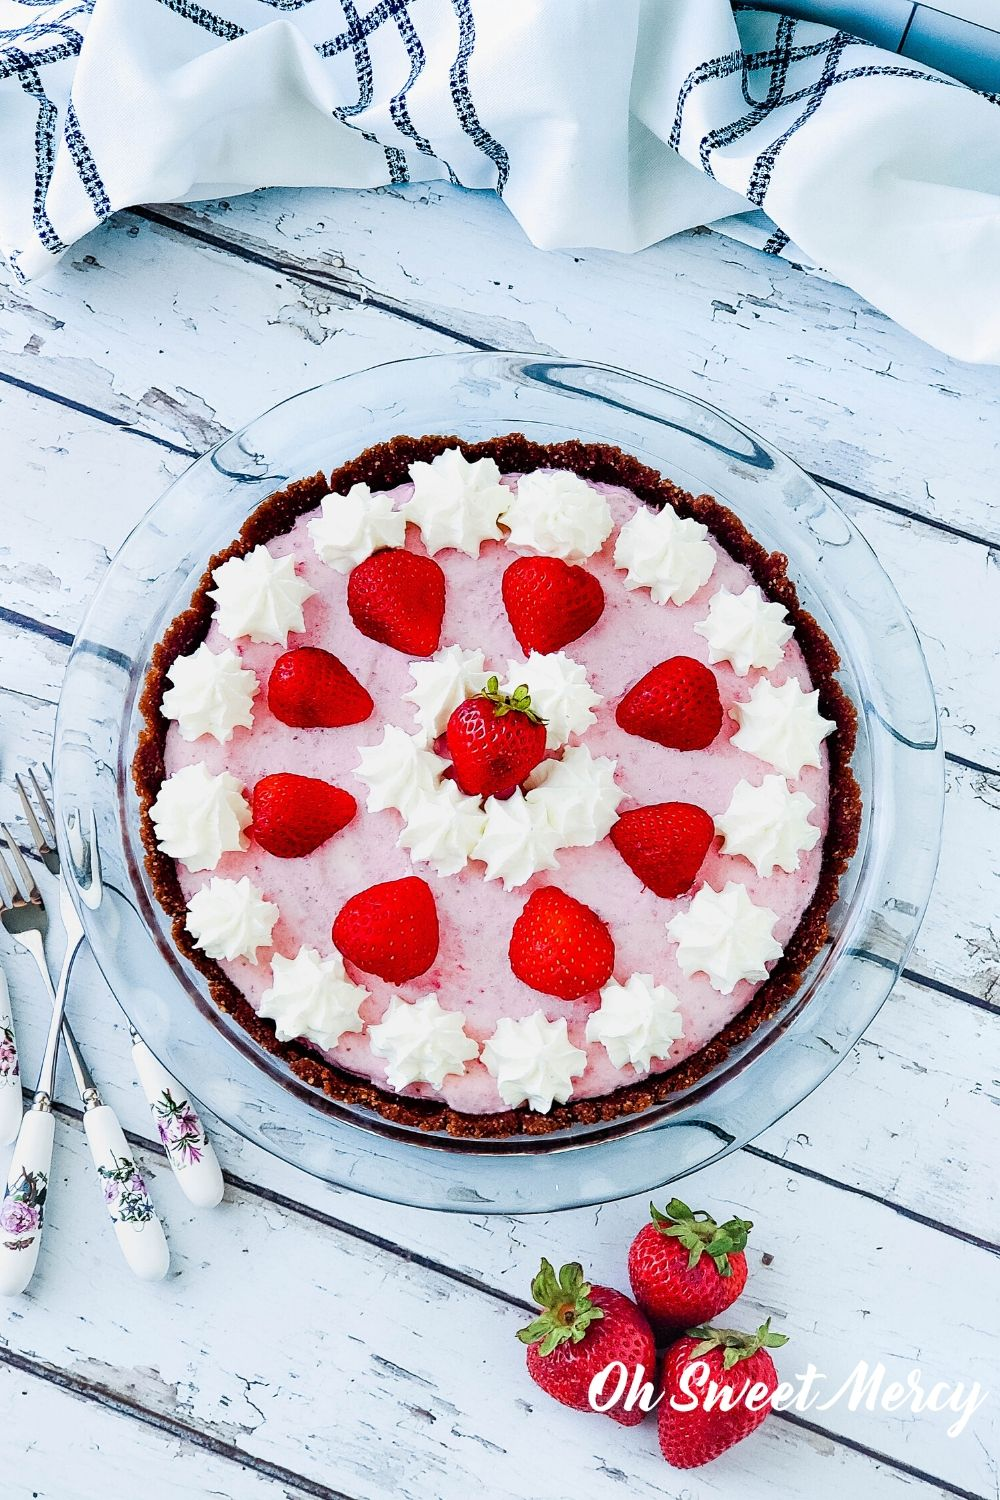 Whole low carb strawberry freezer pie decorated with dollops of whipped cream and strawberry halves